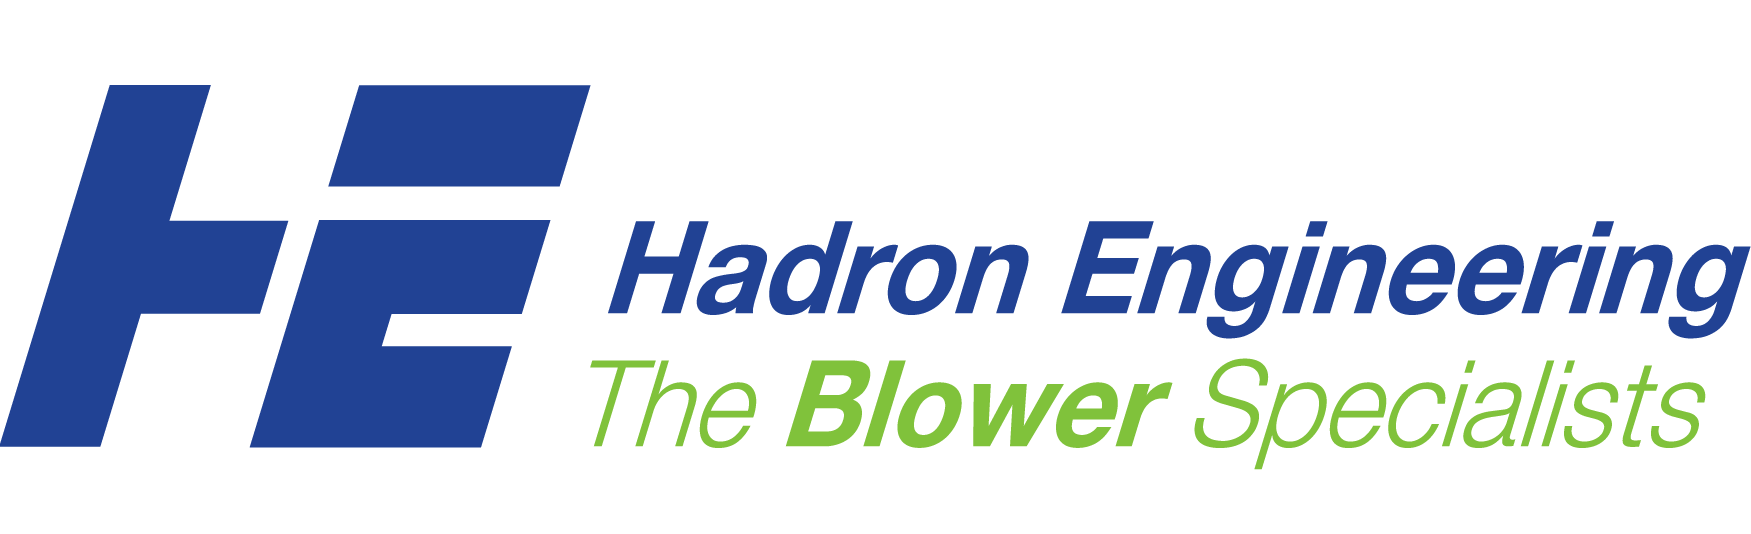 Hadron Engineering - The Blower Specialists